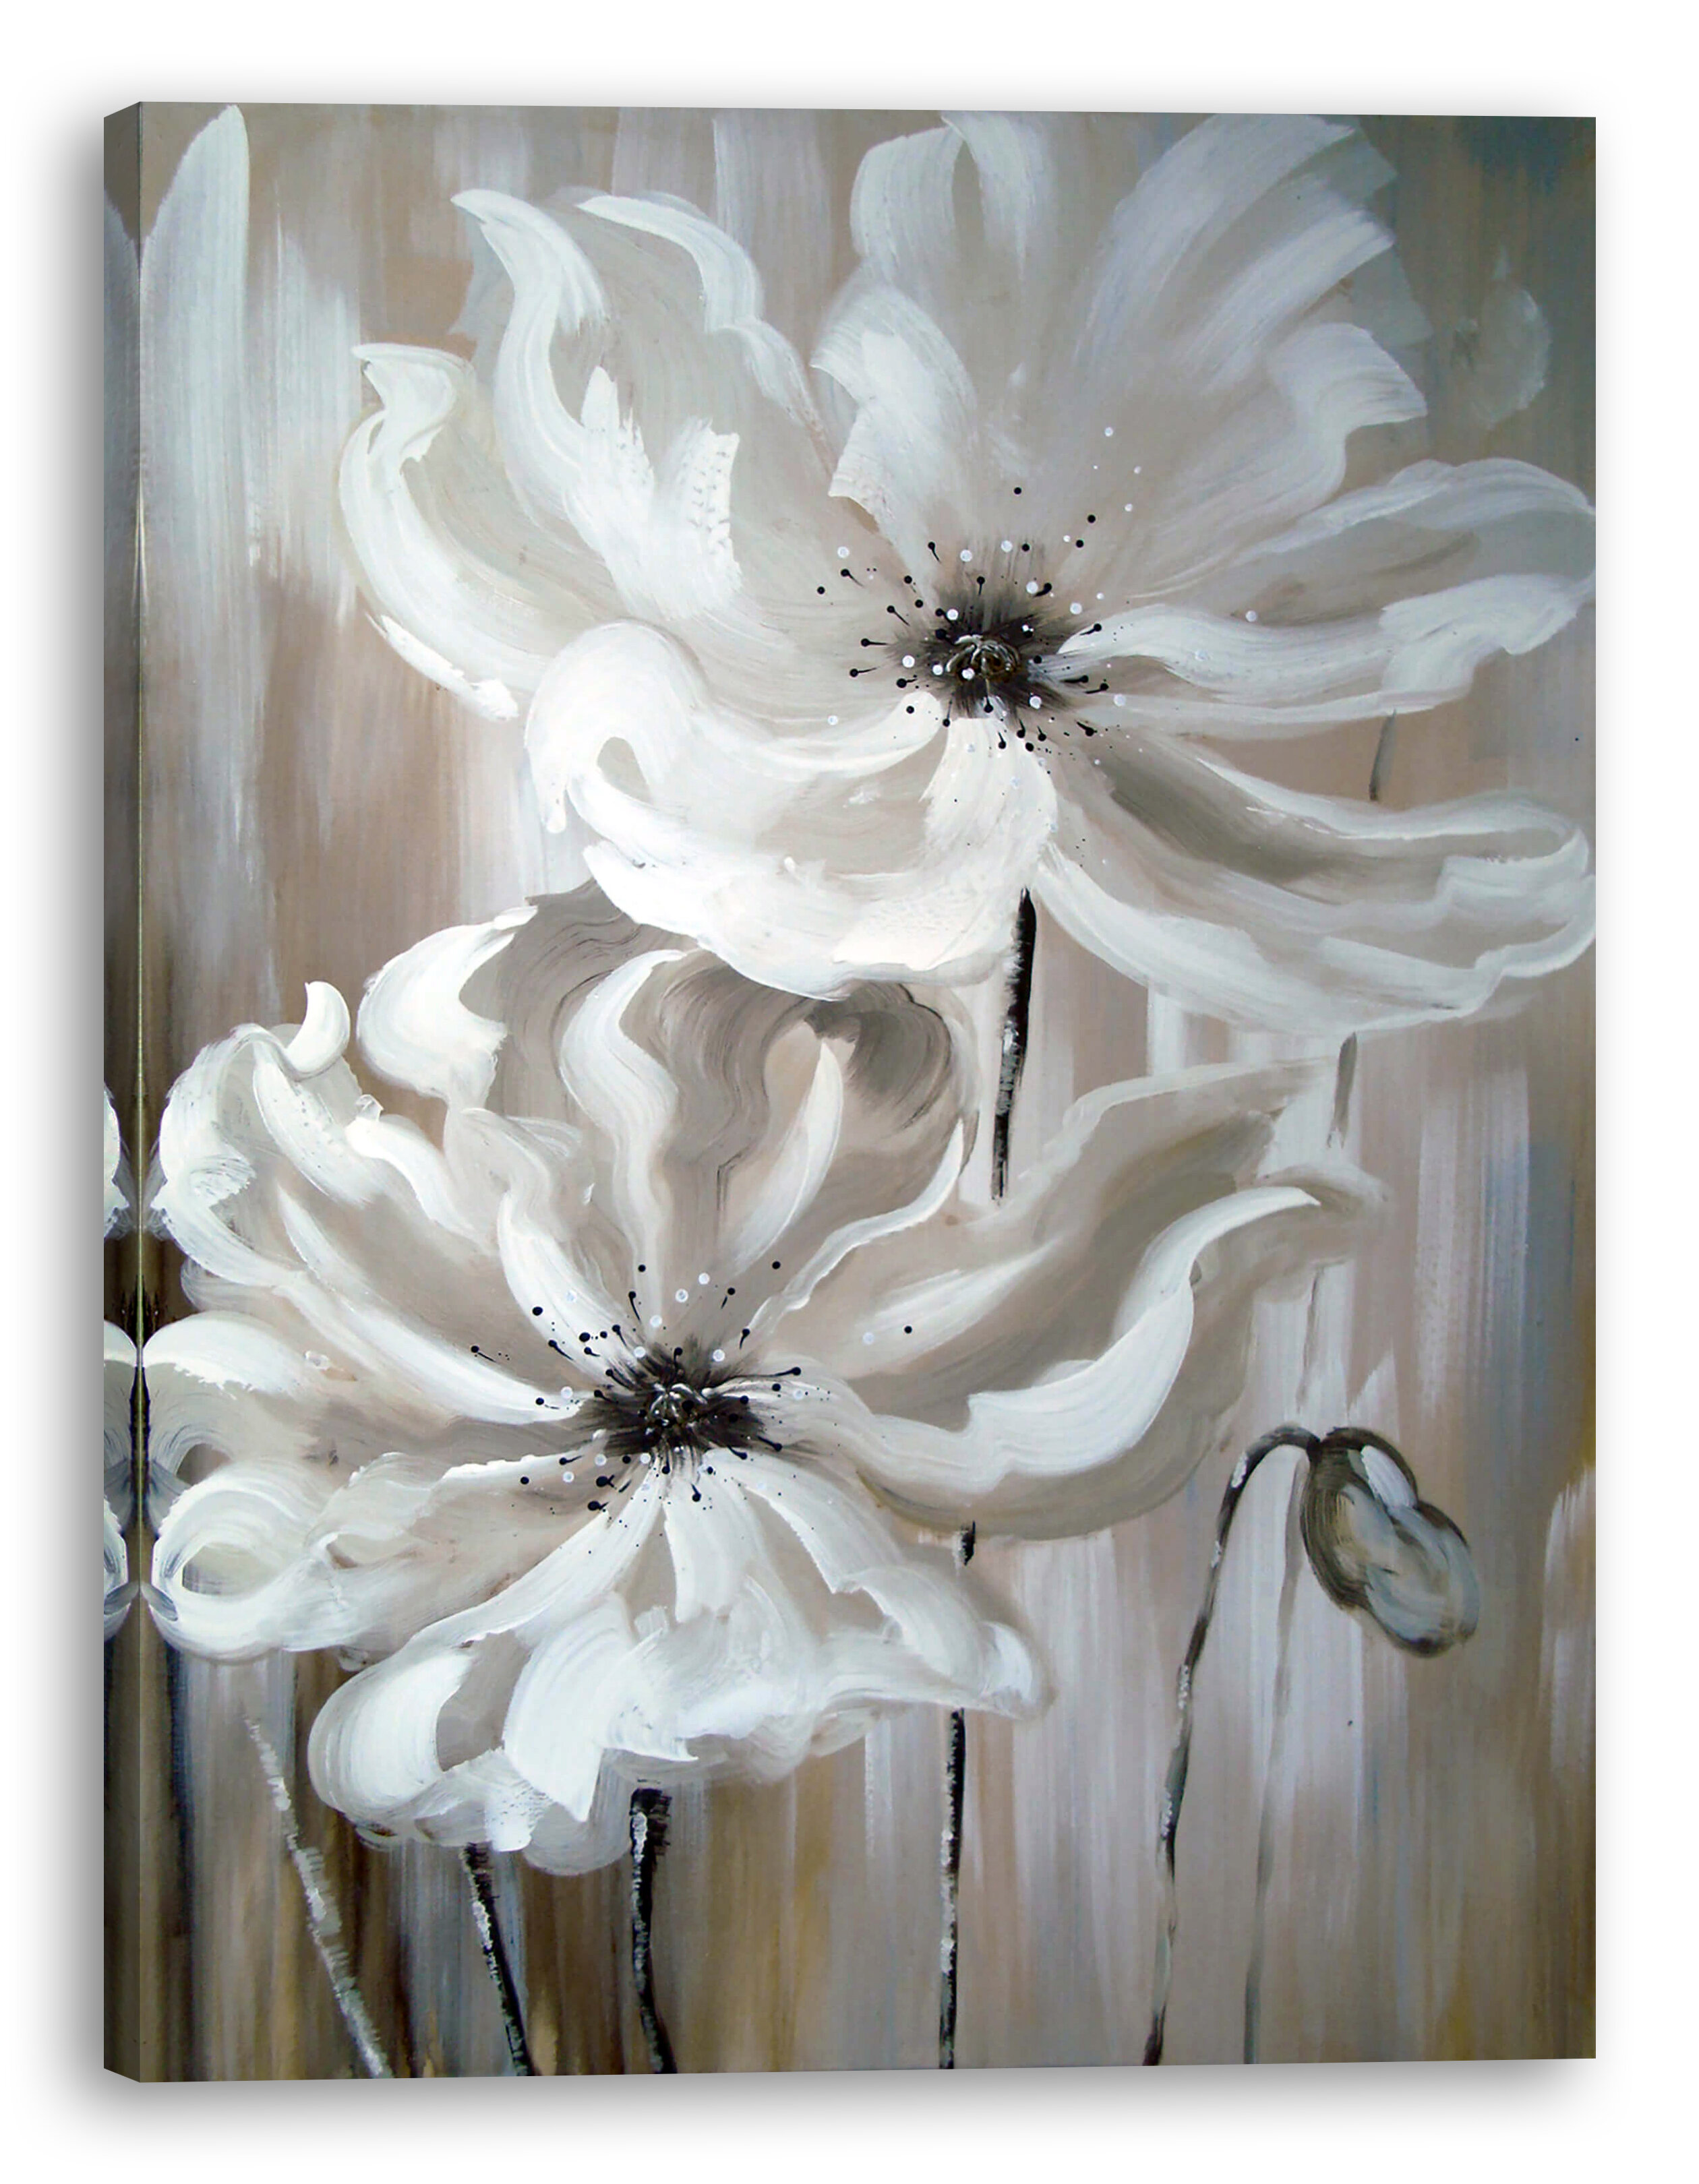 Ebern Designs White Flower I Oil Painting Print On Wrapped Canvas Reviews Wayfair